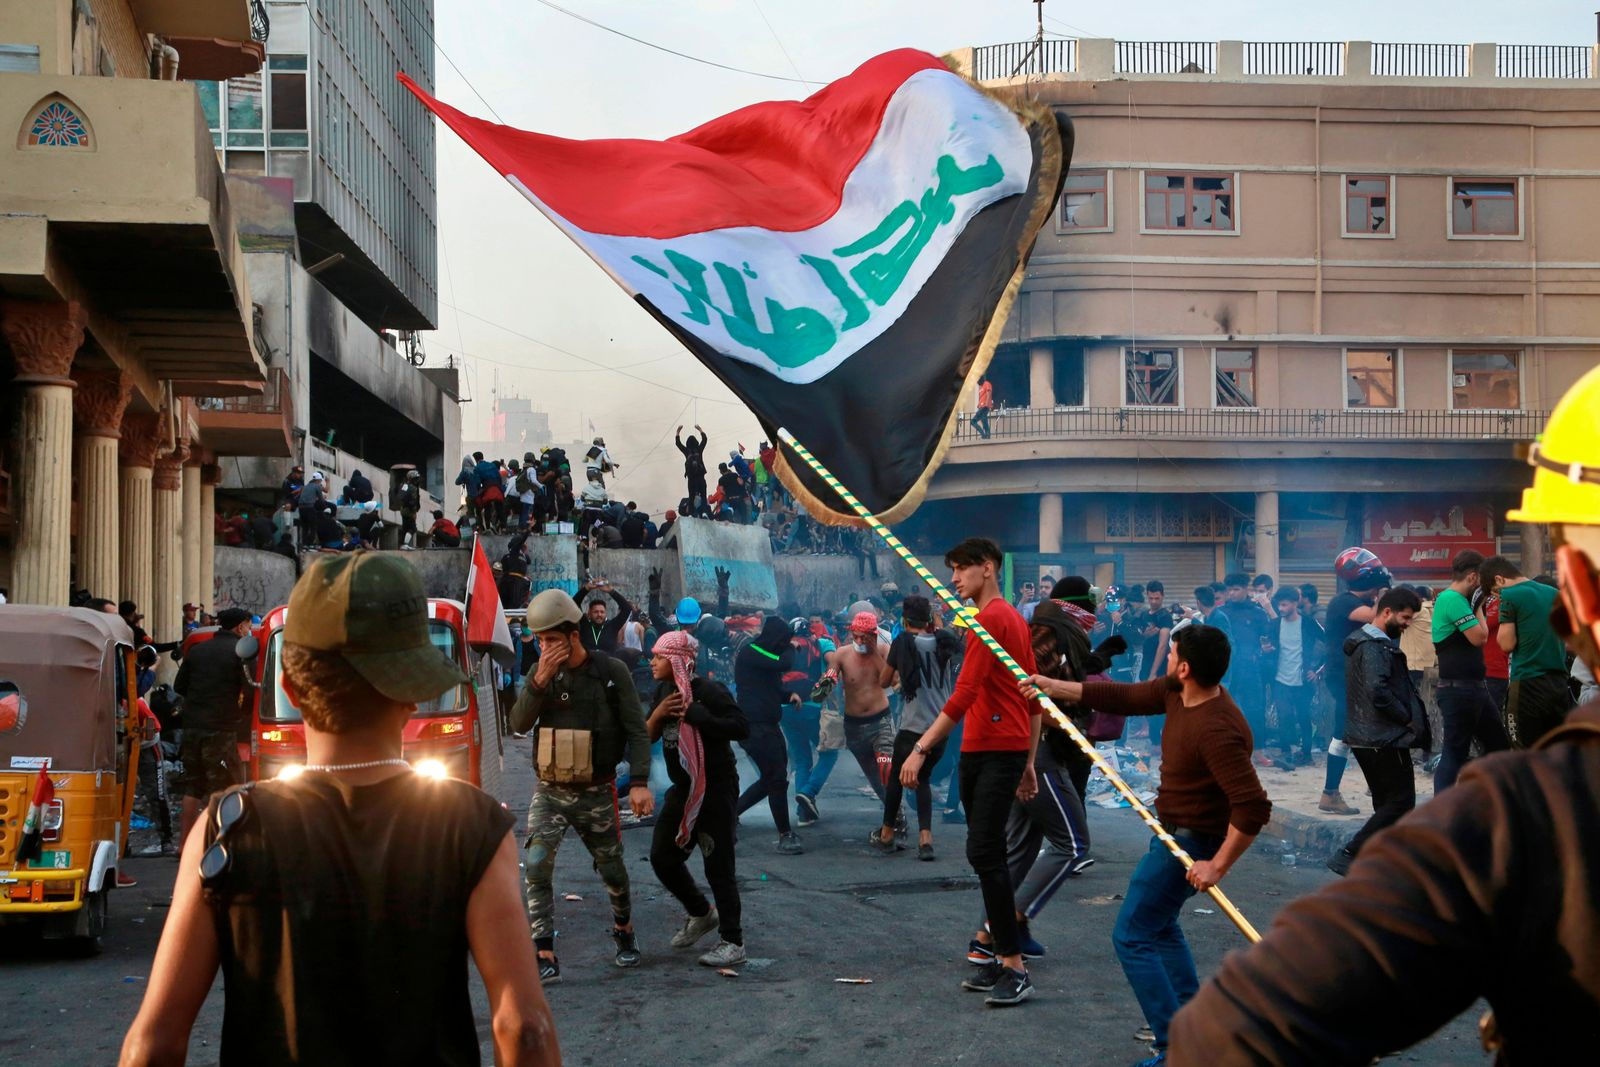 Anti-government protesters gather on Rasheed Street during clashes with security forces in Baghdad, Iraq, Thursday, Nov. 28, 2019. Scores of protesters have been shot dead in the last 24 hours, amid spiraling violence in Baghdad and southern Iraq, officials said. (AP Photo/Khalid Mohammed)